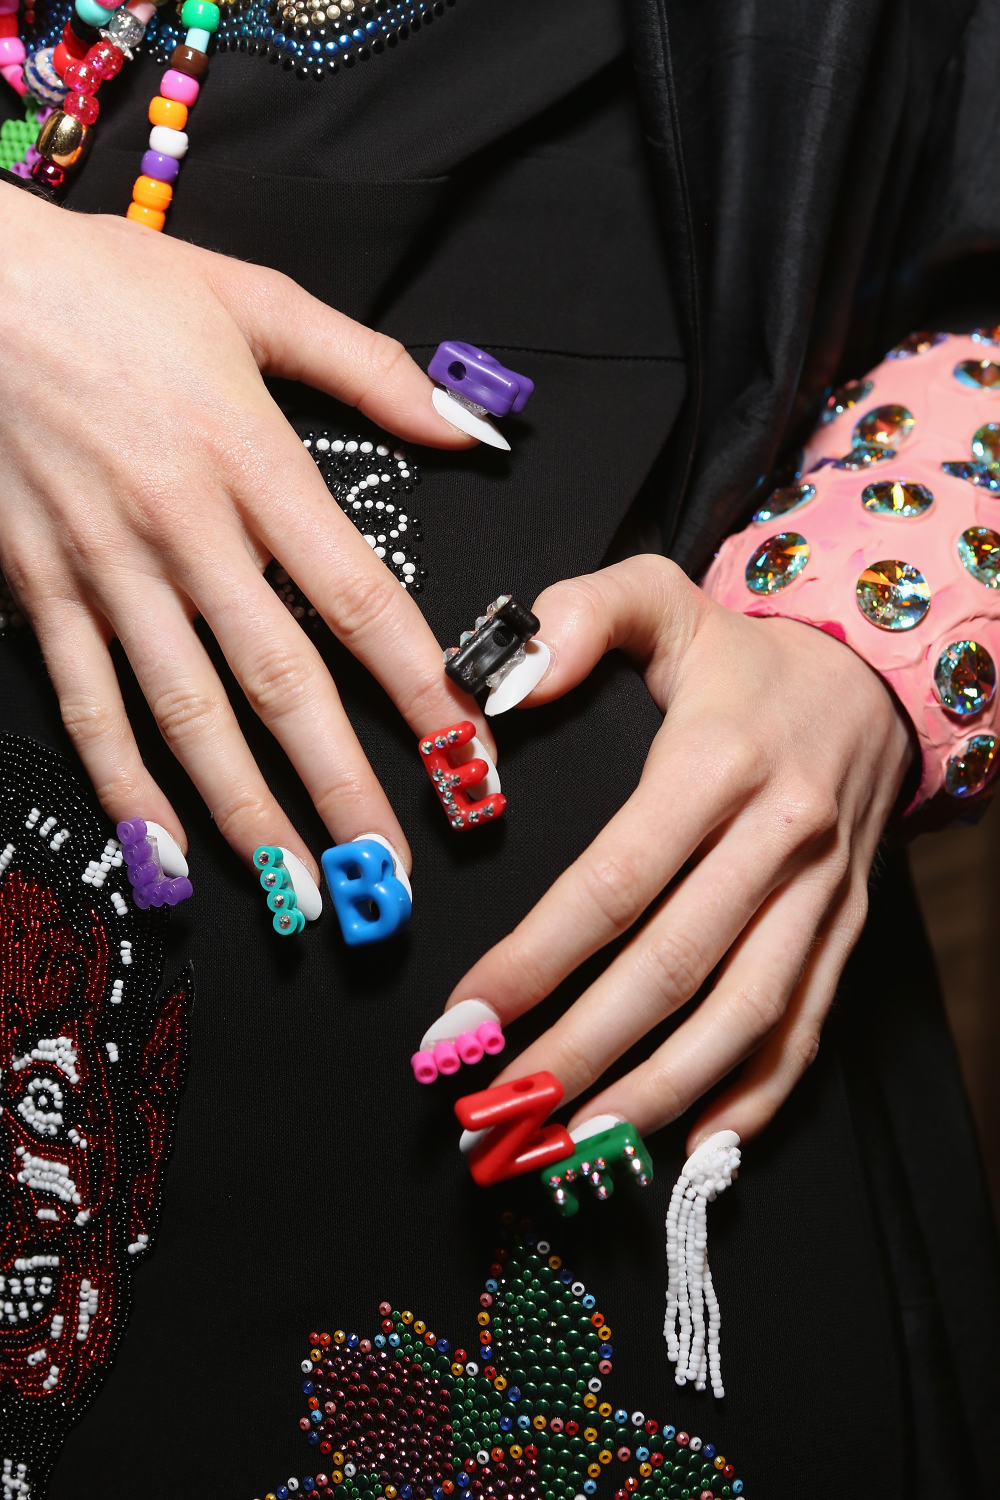 <p>The clothing and nails at Libertine represented elements of both punk rock and royalty.Photo courtesy of CND.</p>